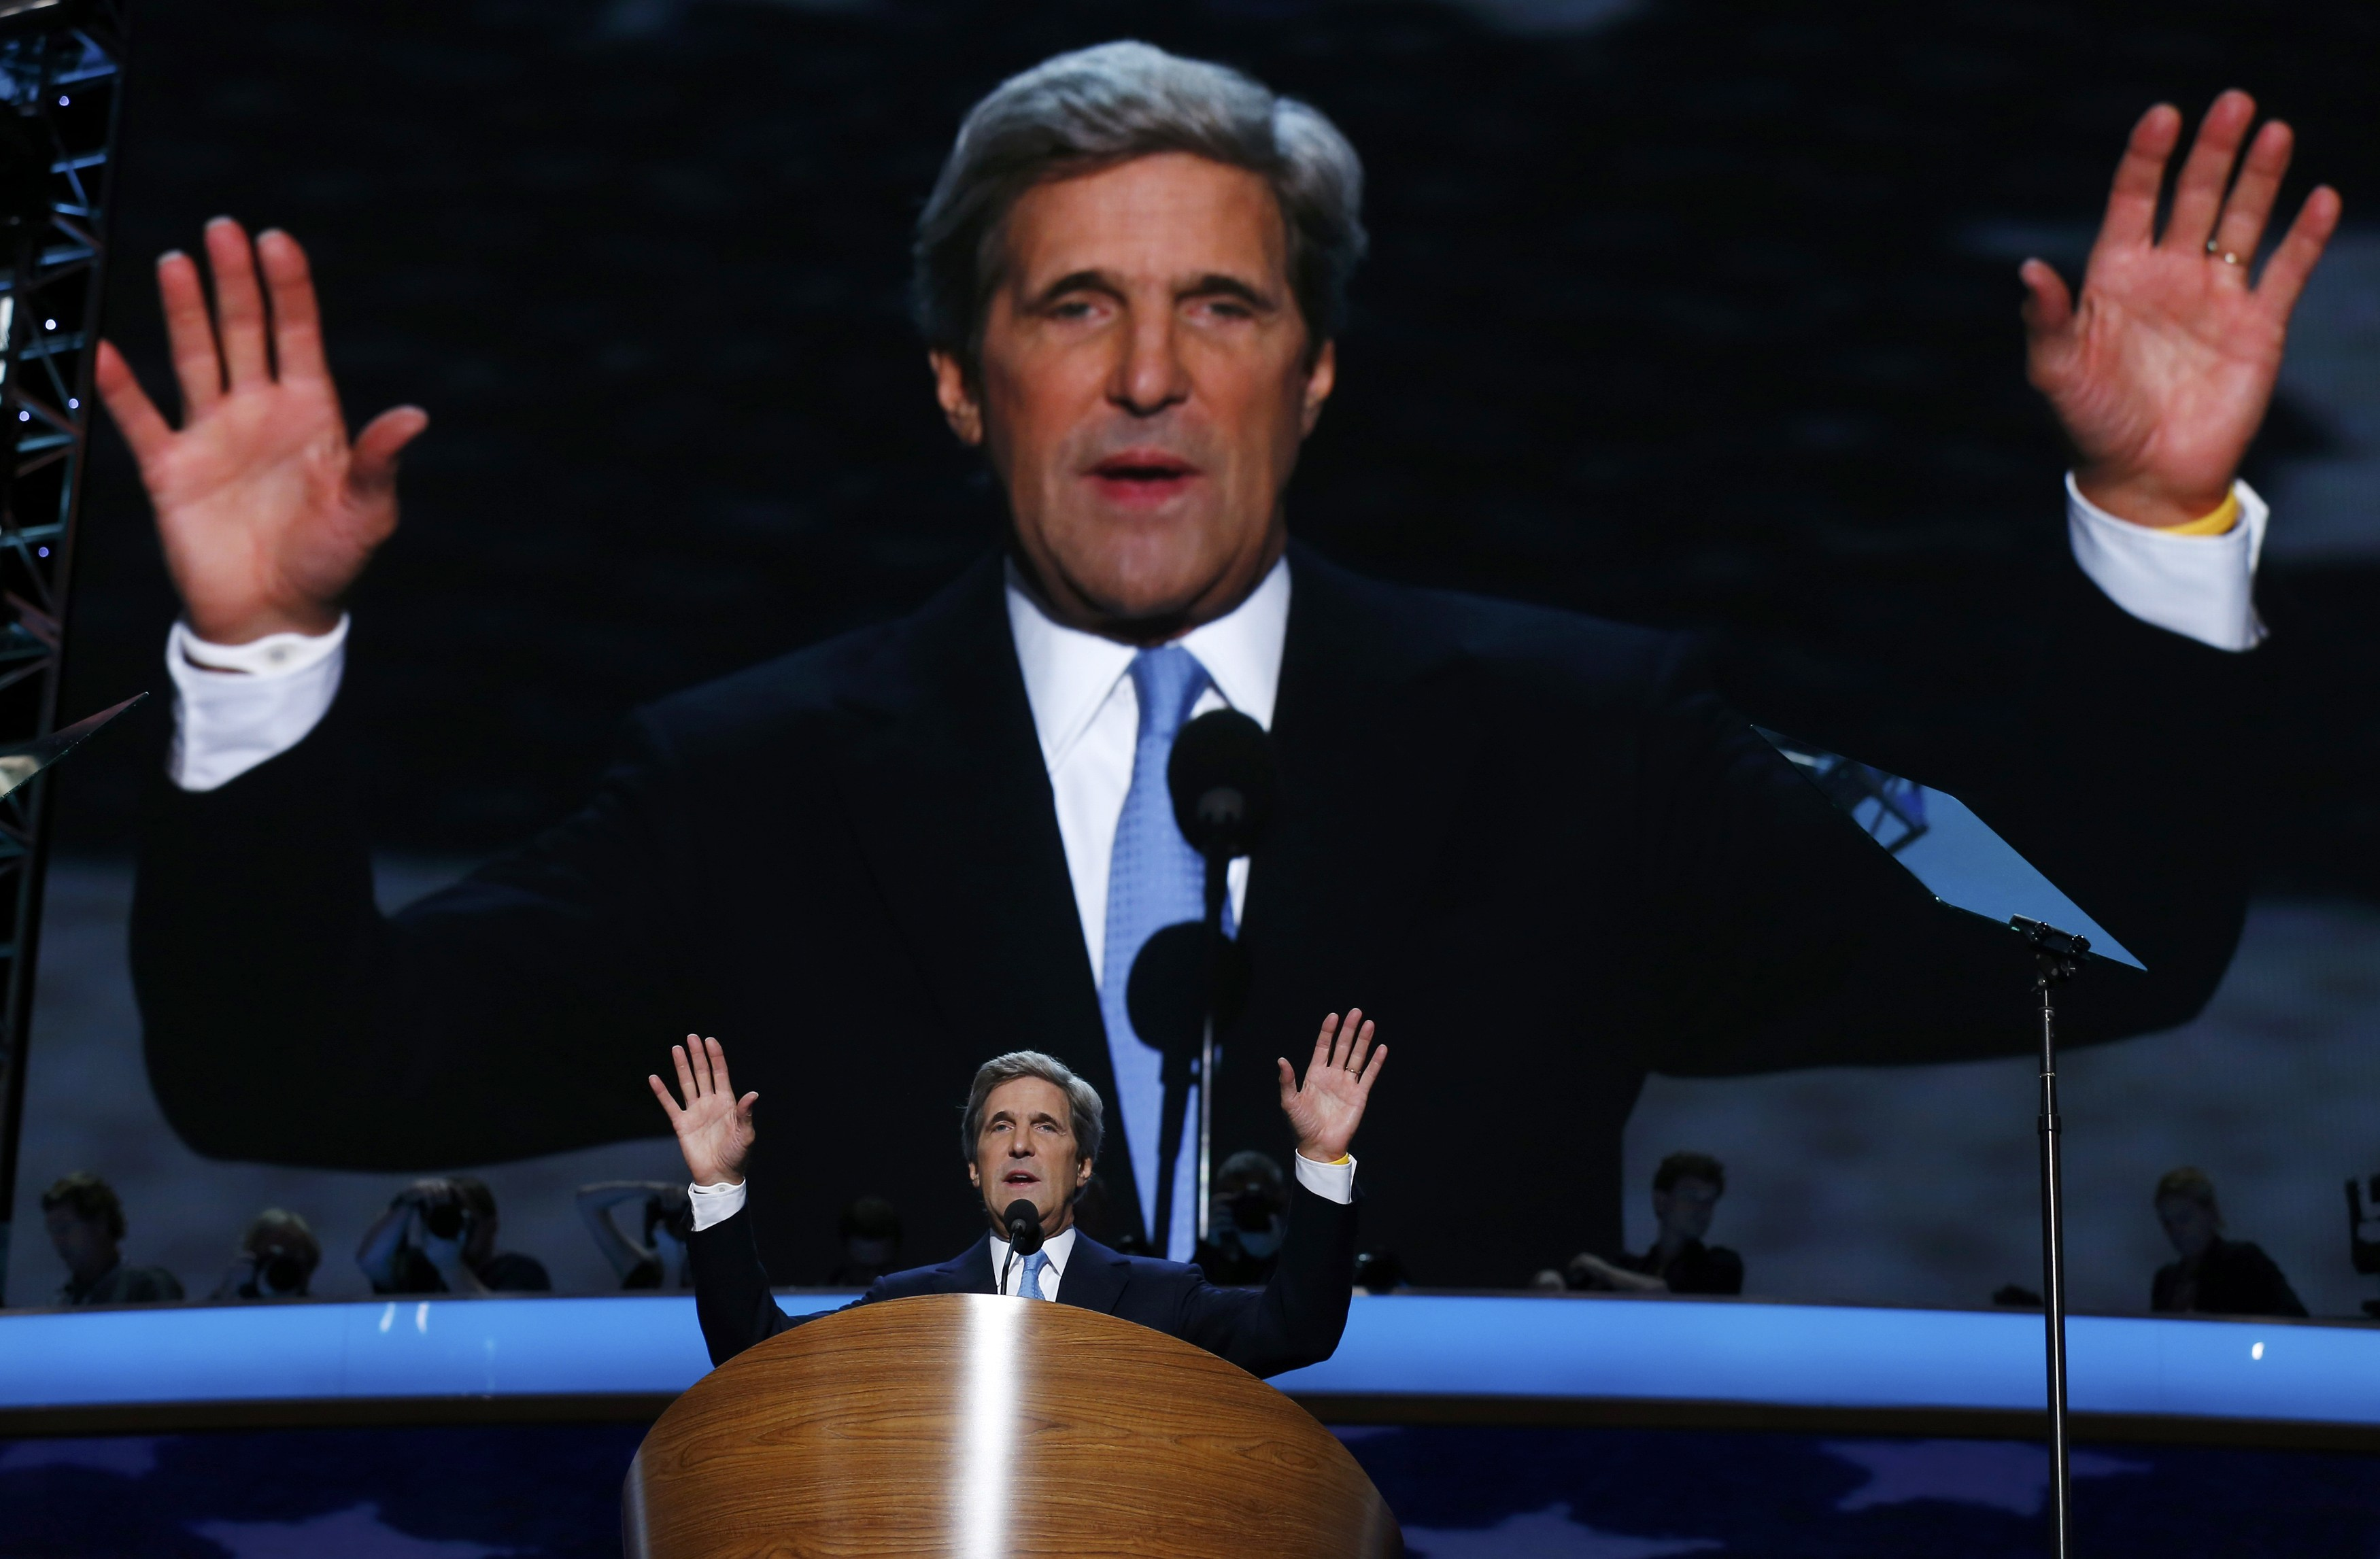 Senator John Kerry at the 2012 Democratic National Convention (Jim Young/Reuters)